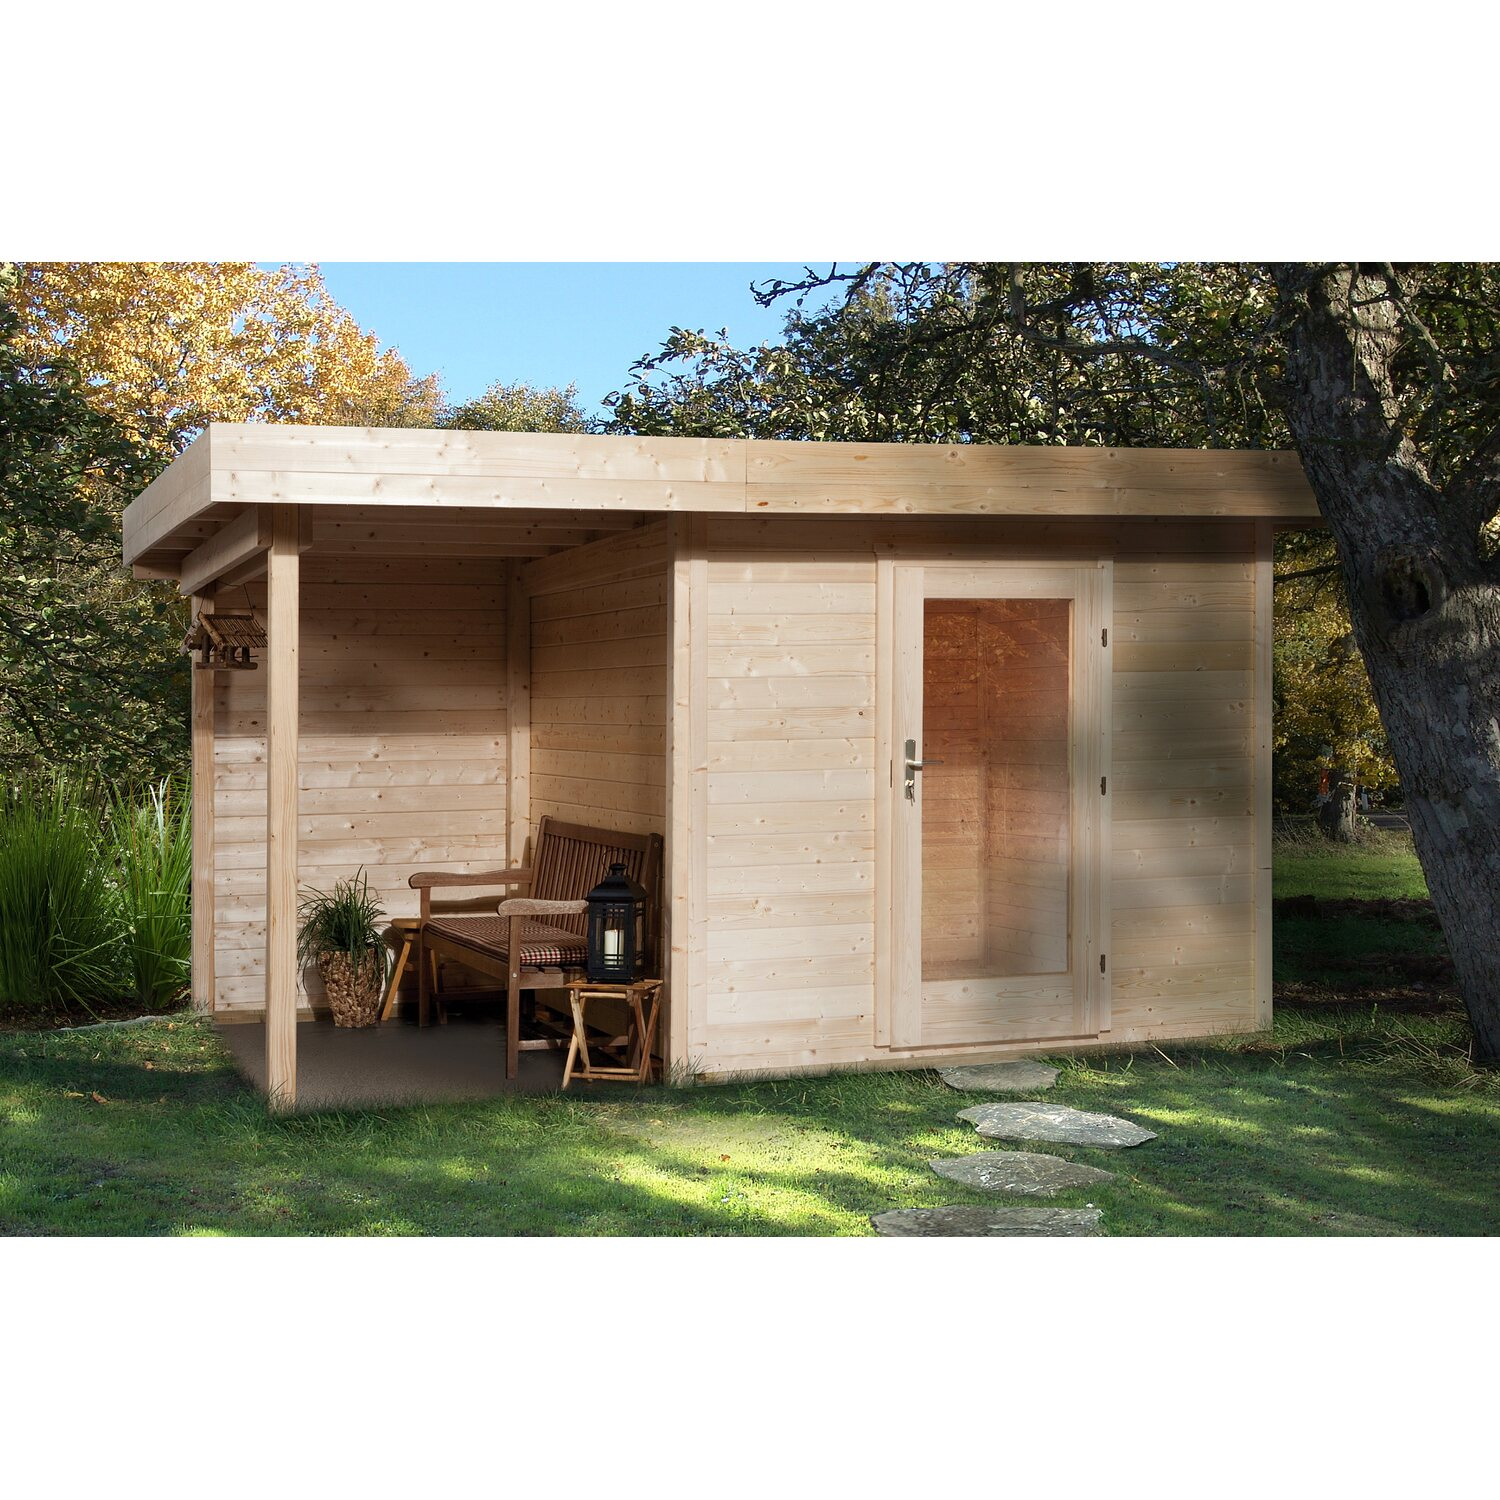 obi holz gartenhaus florenz b gr e 2 natur bxt 385 x 240. Black Bedroom Furniture Sets. Home Design Ideas